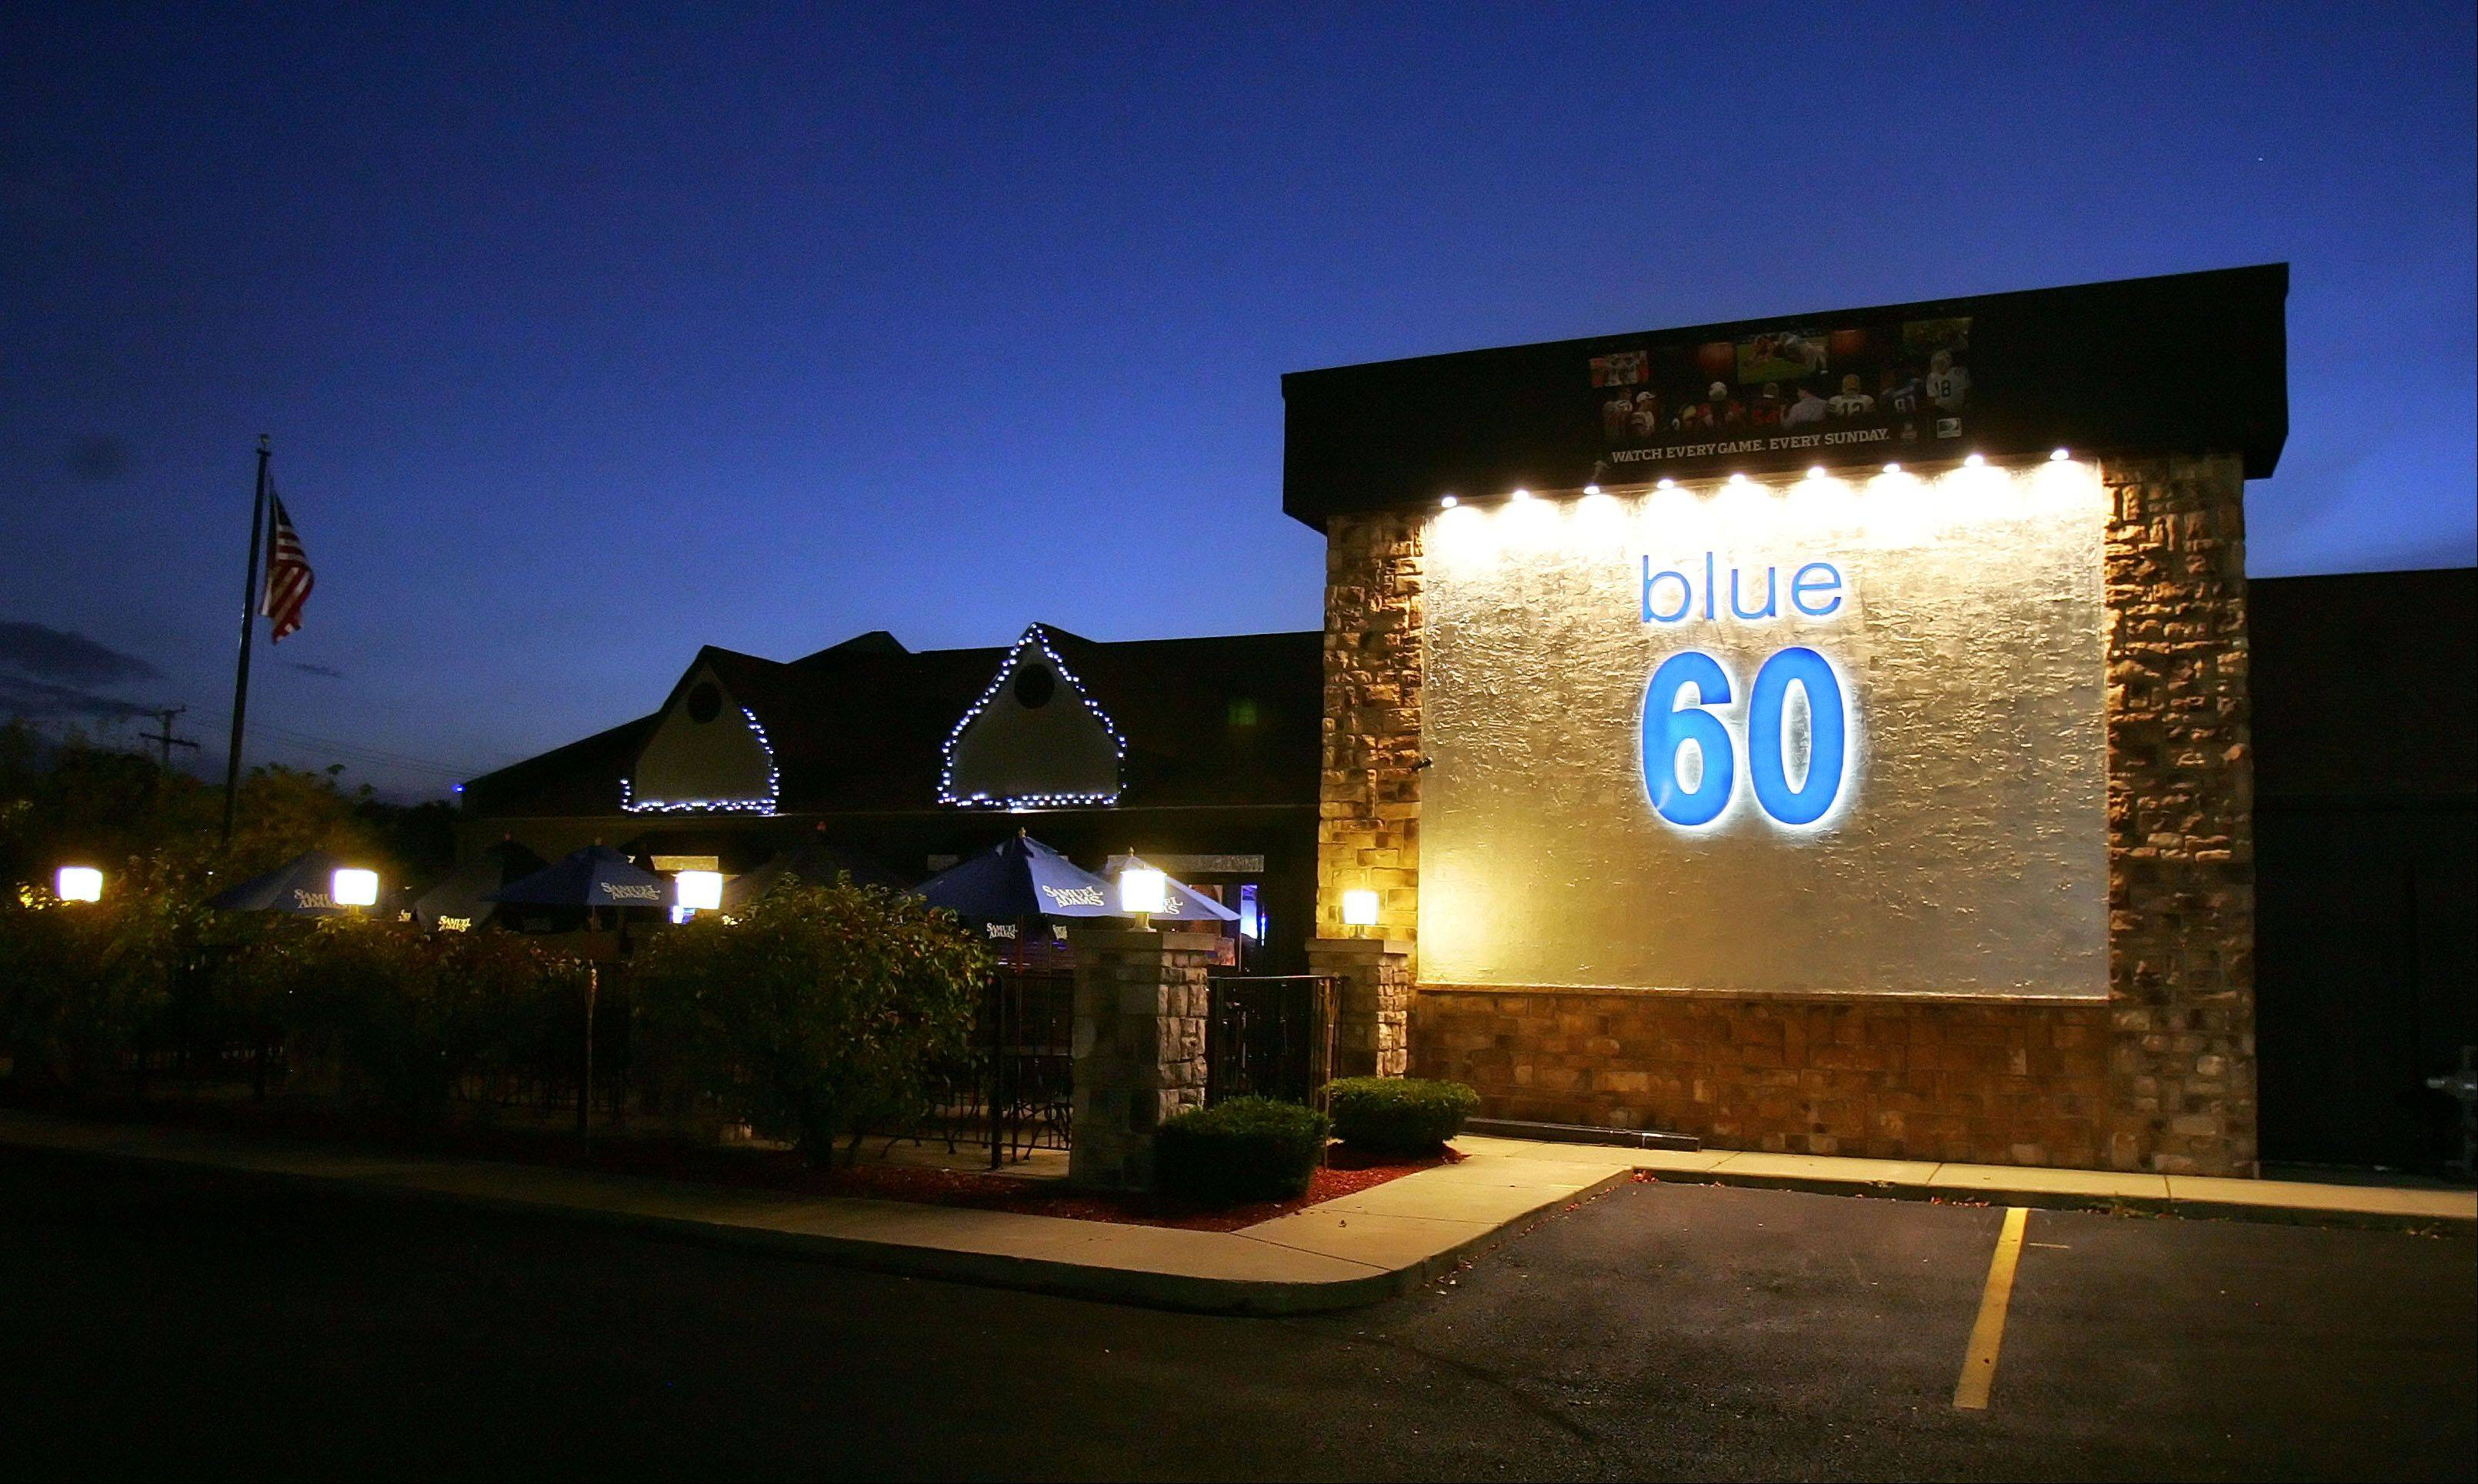 The Blue 60 sports bar in Mundelein will lose its liquor license in 60 days if the owner doesn�t sell the place.